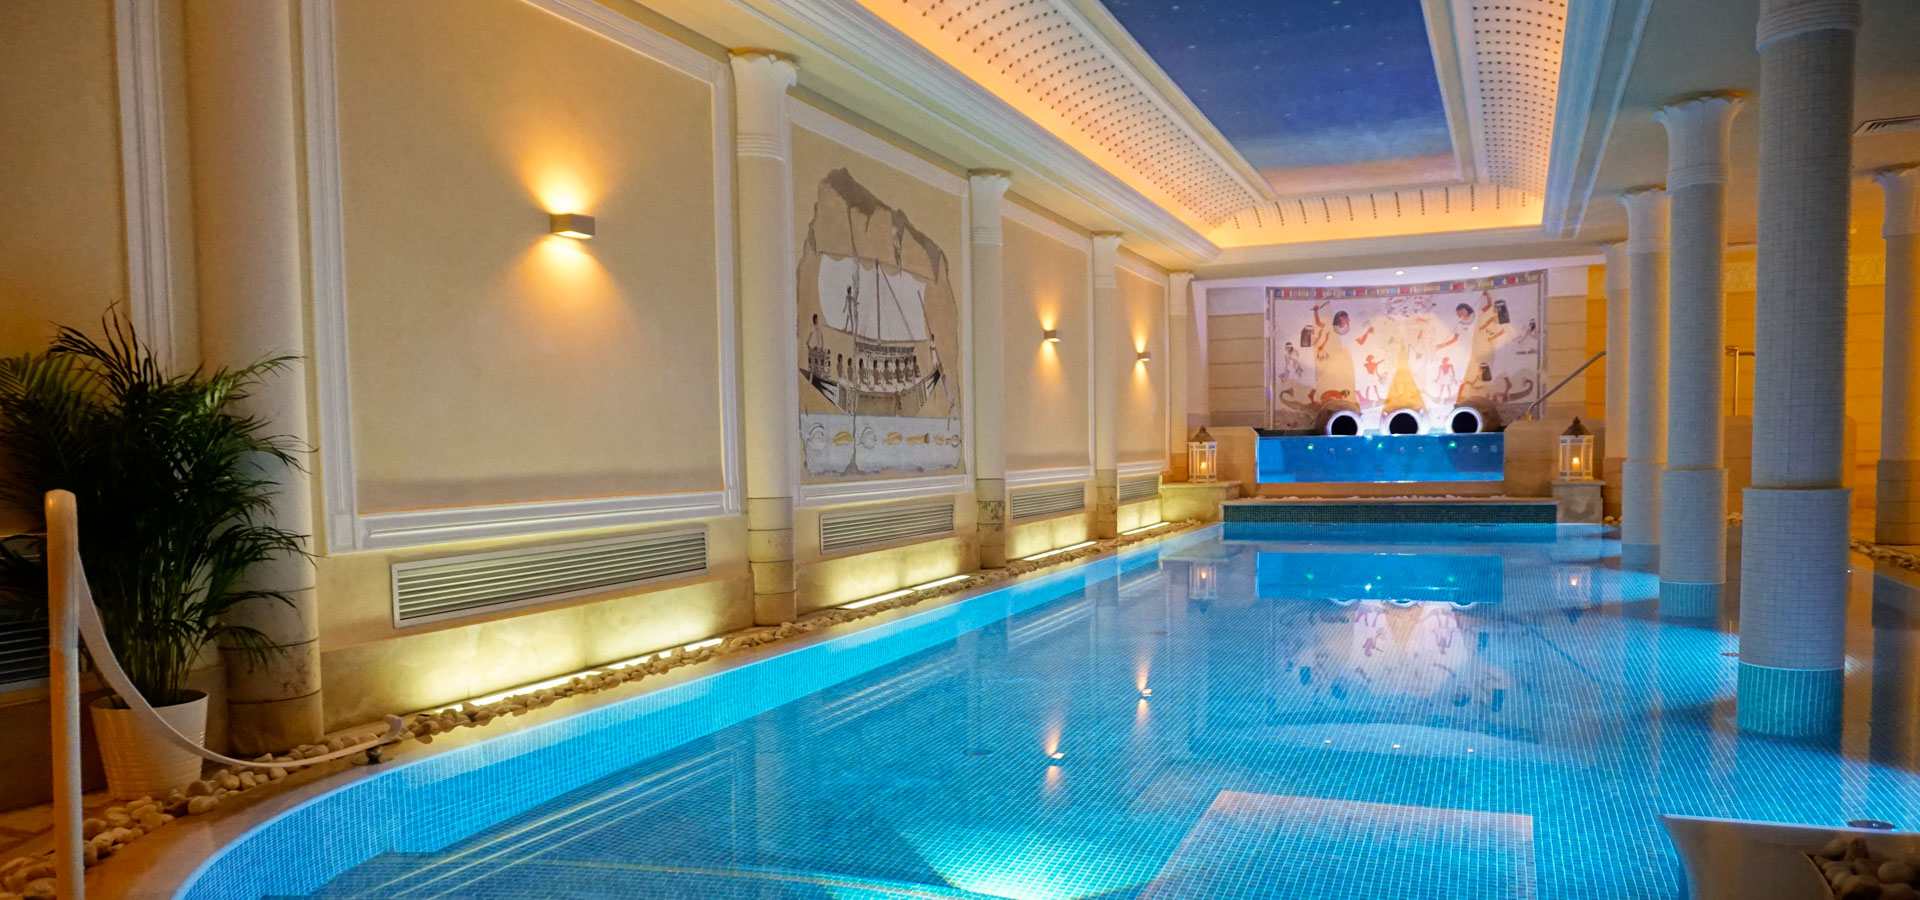 Excellent spa facilites, wonderful breakfastFodor's Choice